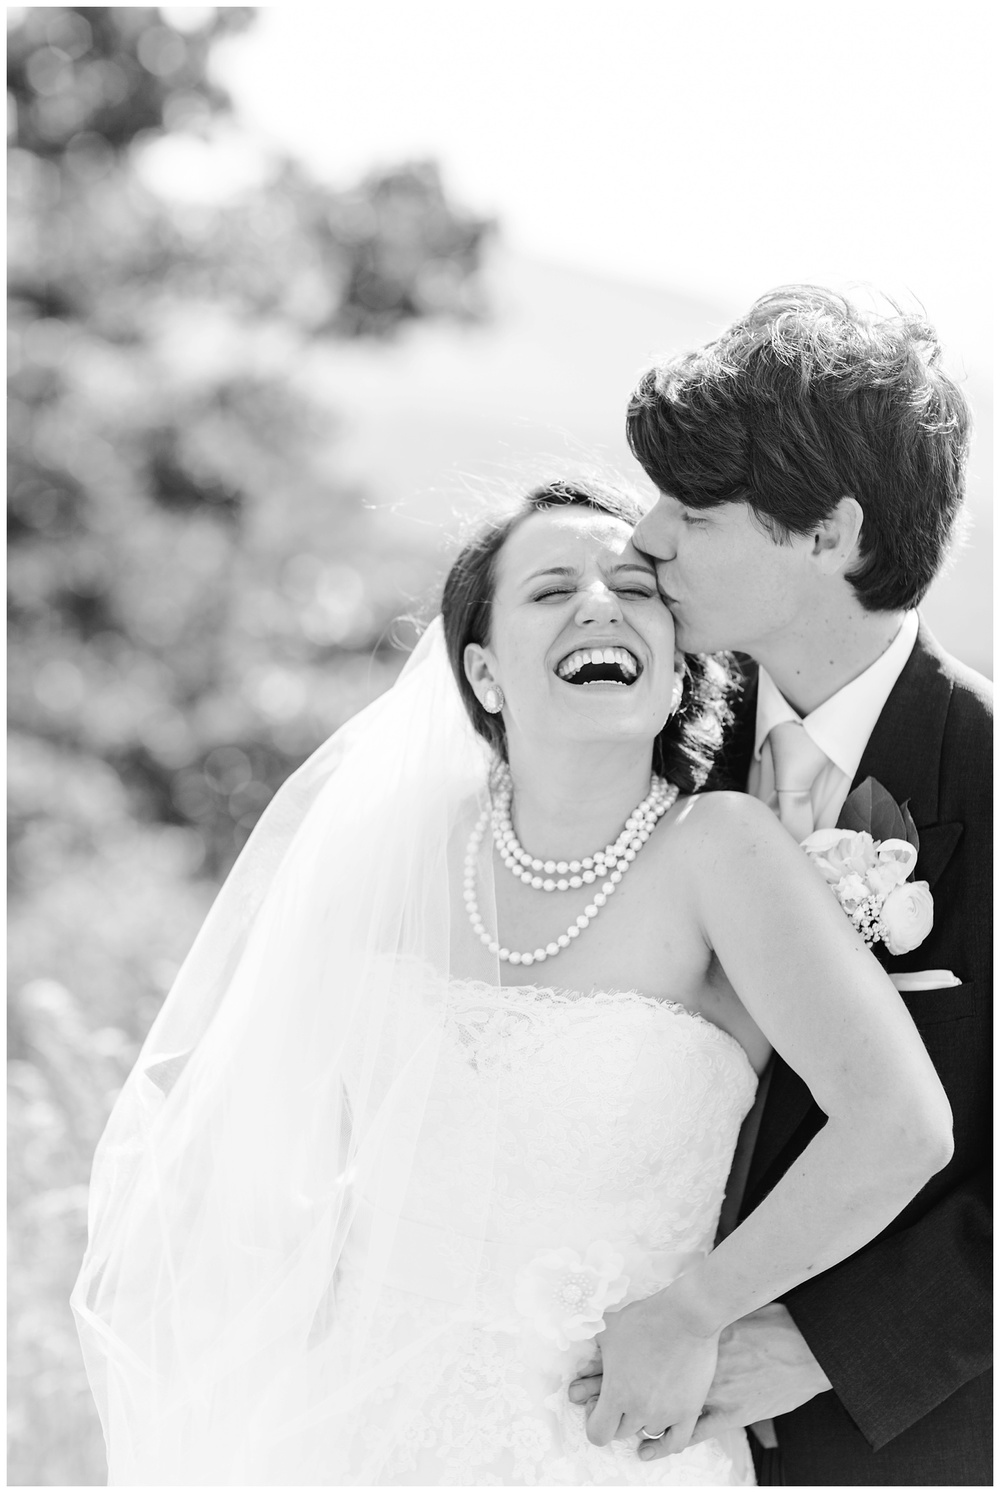 Celia + Will on June 13, 2015 ♥ Jessica Green Photography at Mimslyn Inn (Luray, VA)